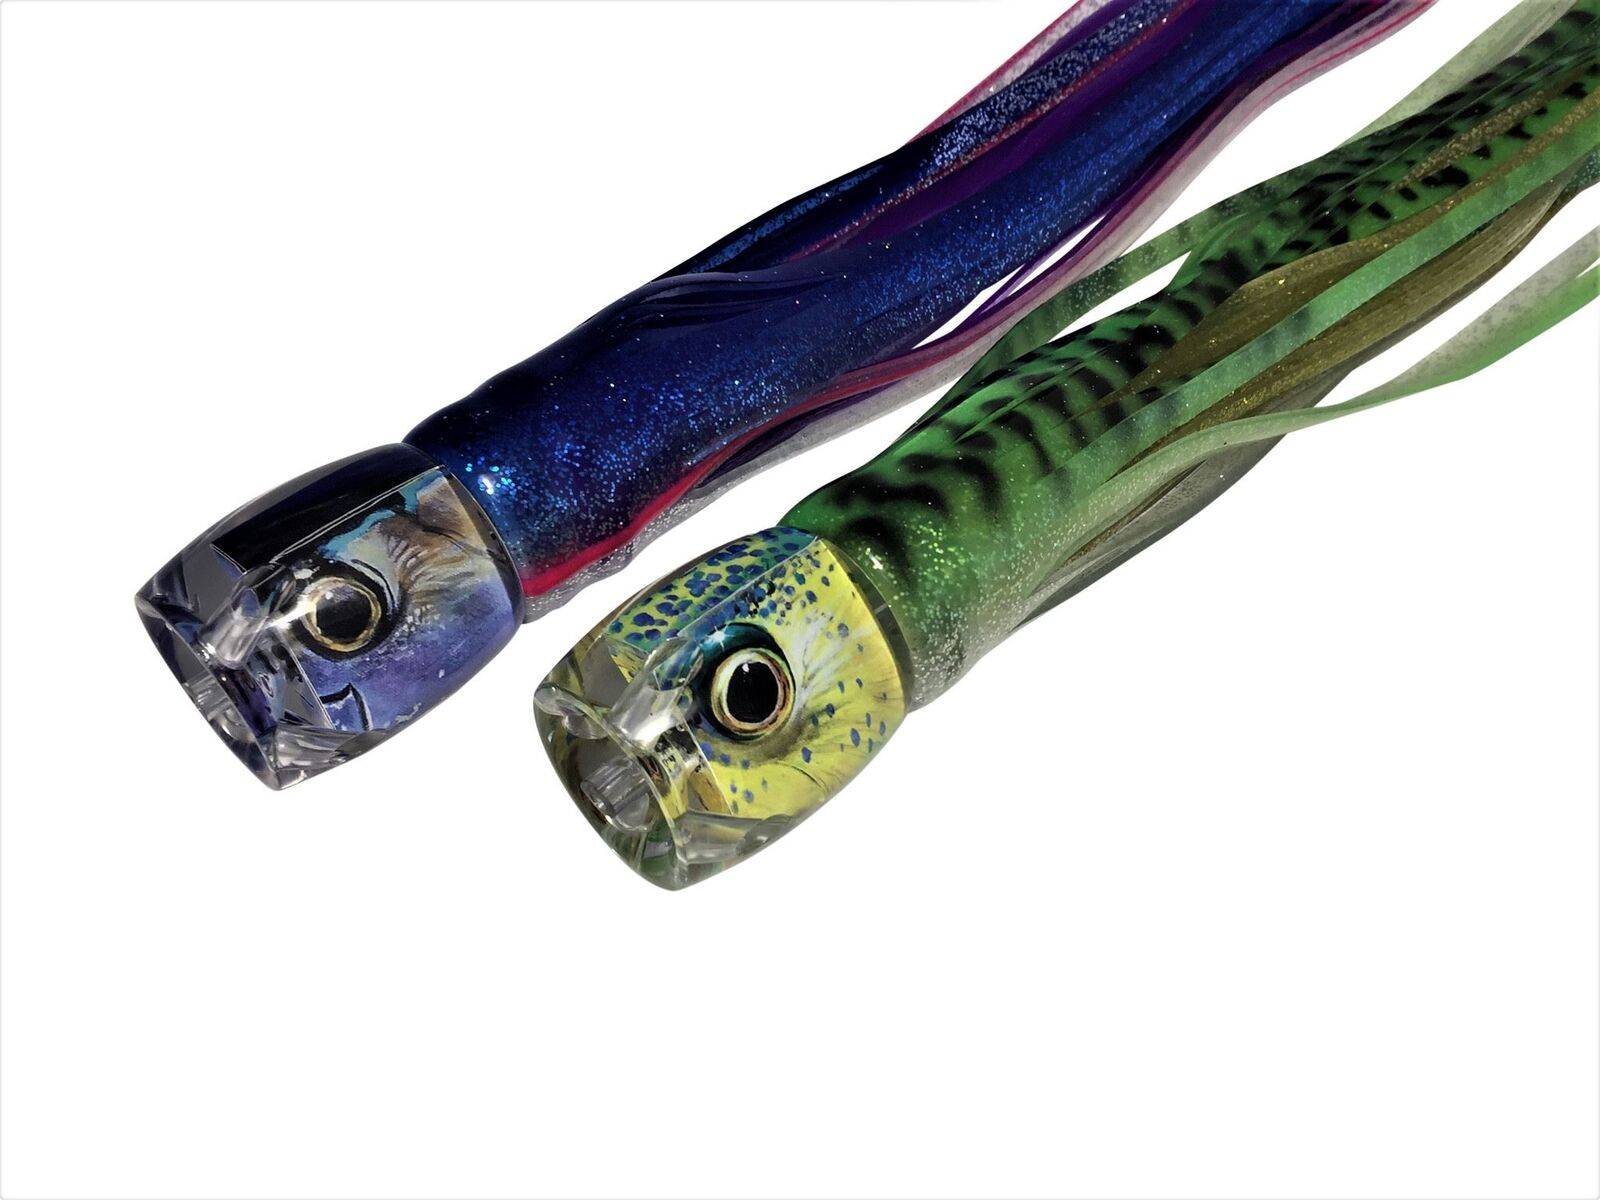 Daisy Chain Offshore Trolling Lure squid Tuna 9 inch rainbow with 12 chart mack